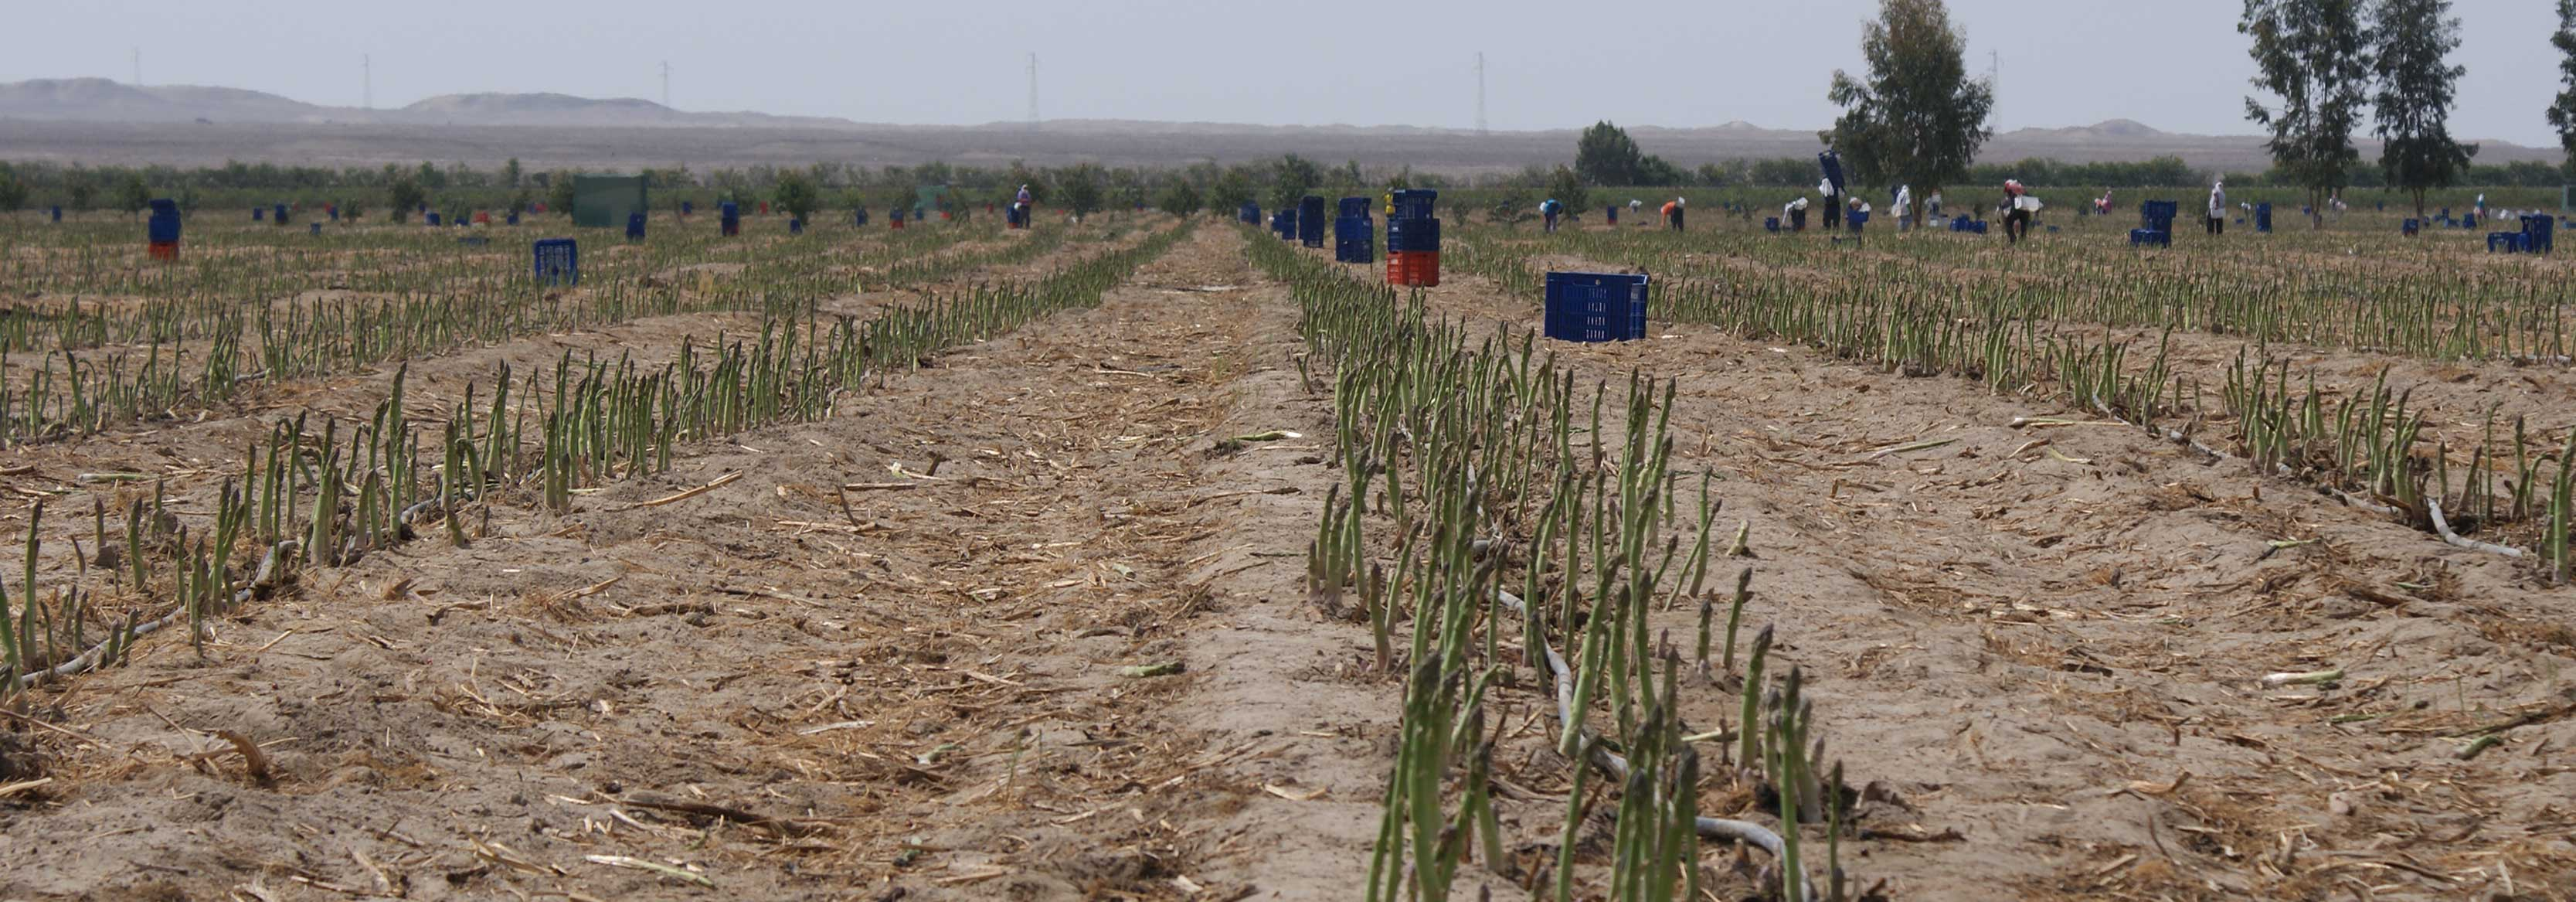 Photograph of Asparagus growing on the Barfoots Nazca farm in Peru